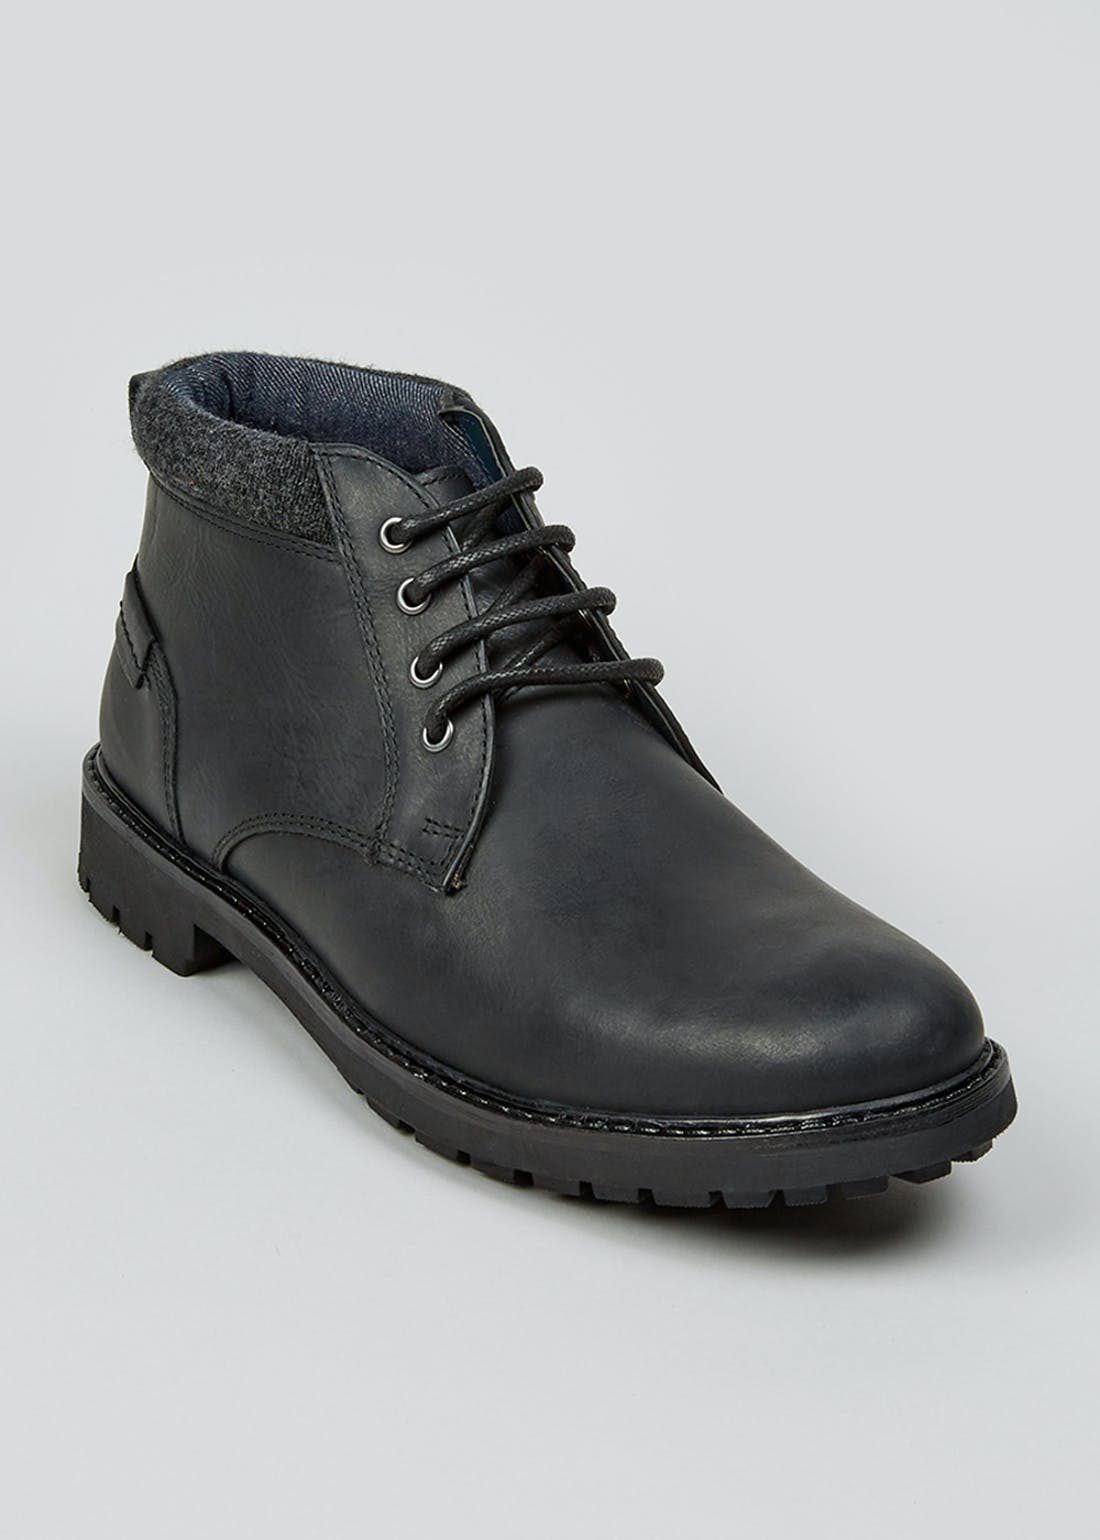 Black Real Leather Chukka Boots